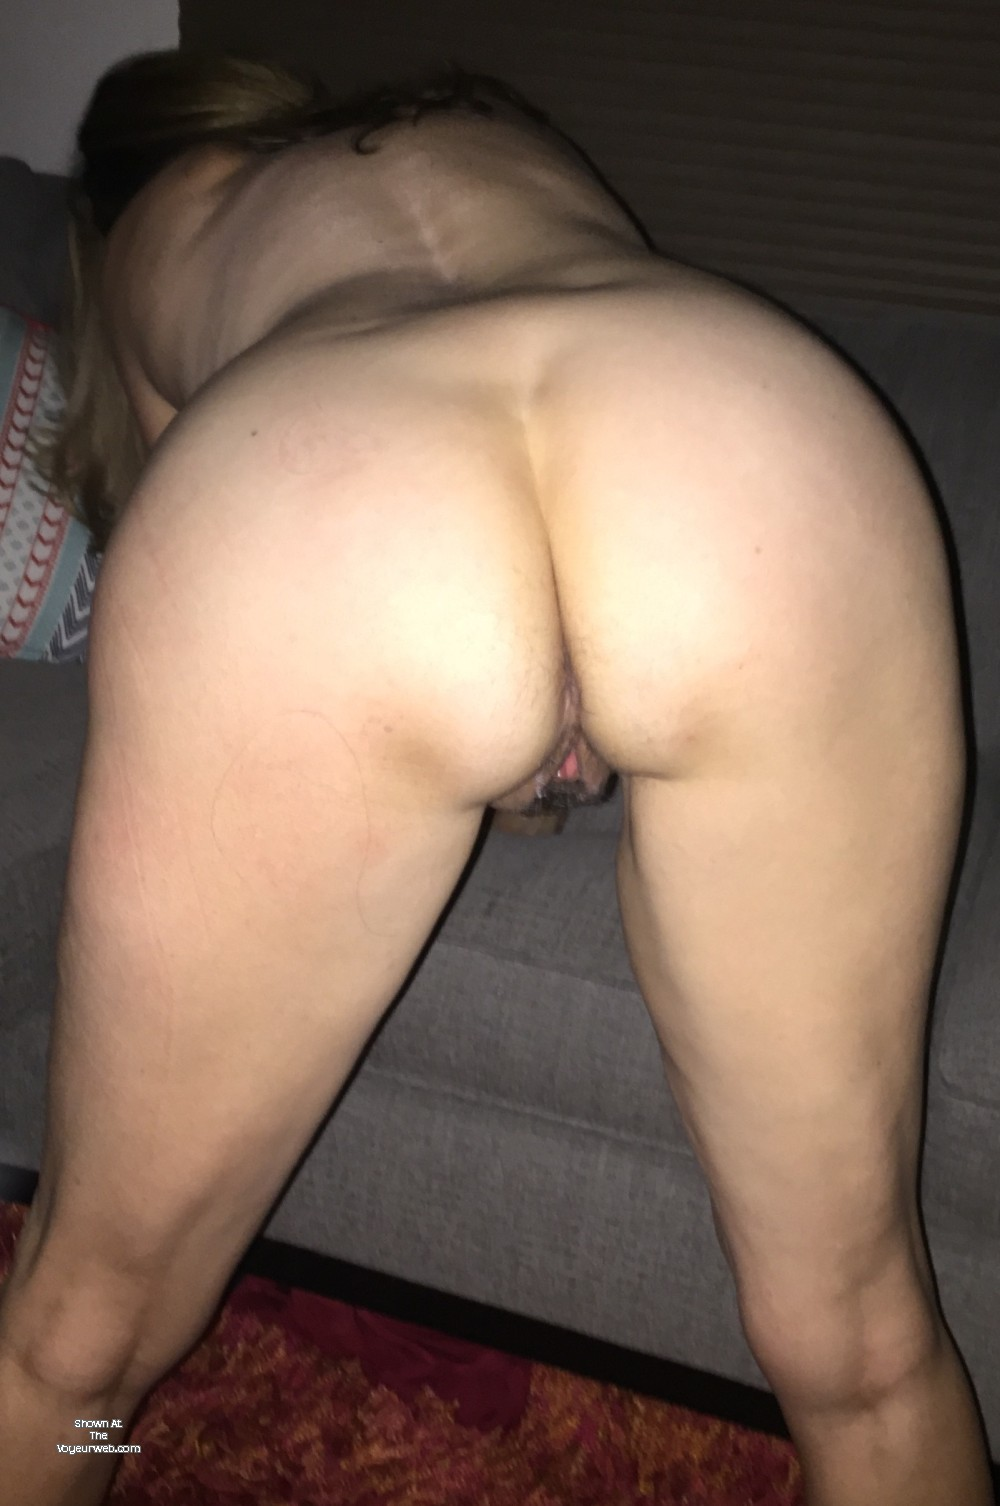 Pic #1My wife's ass - Yvonne